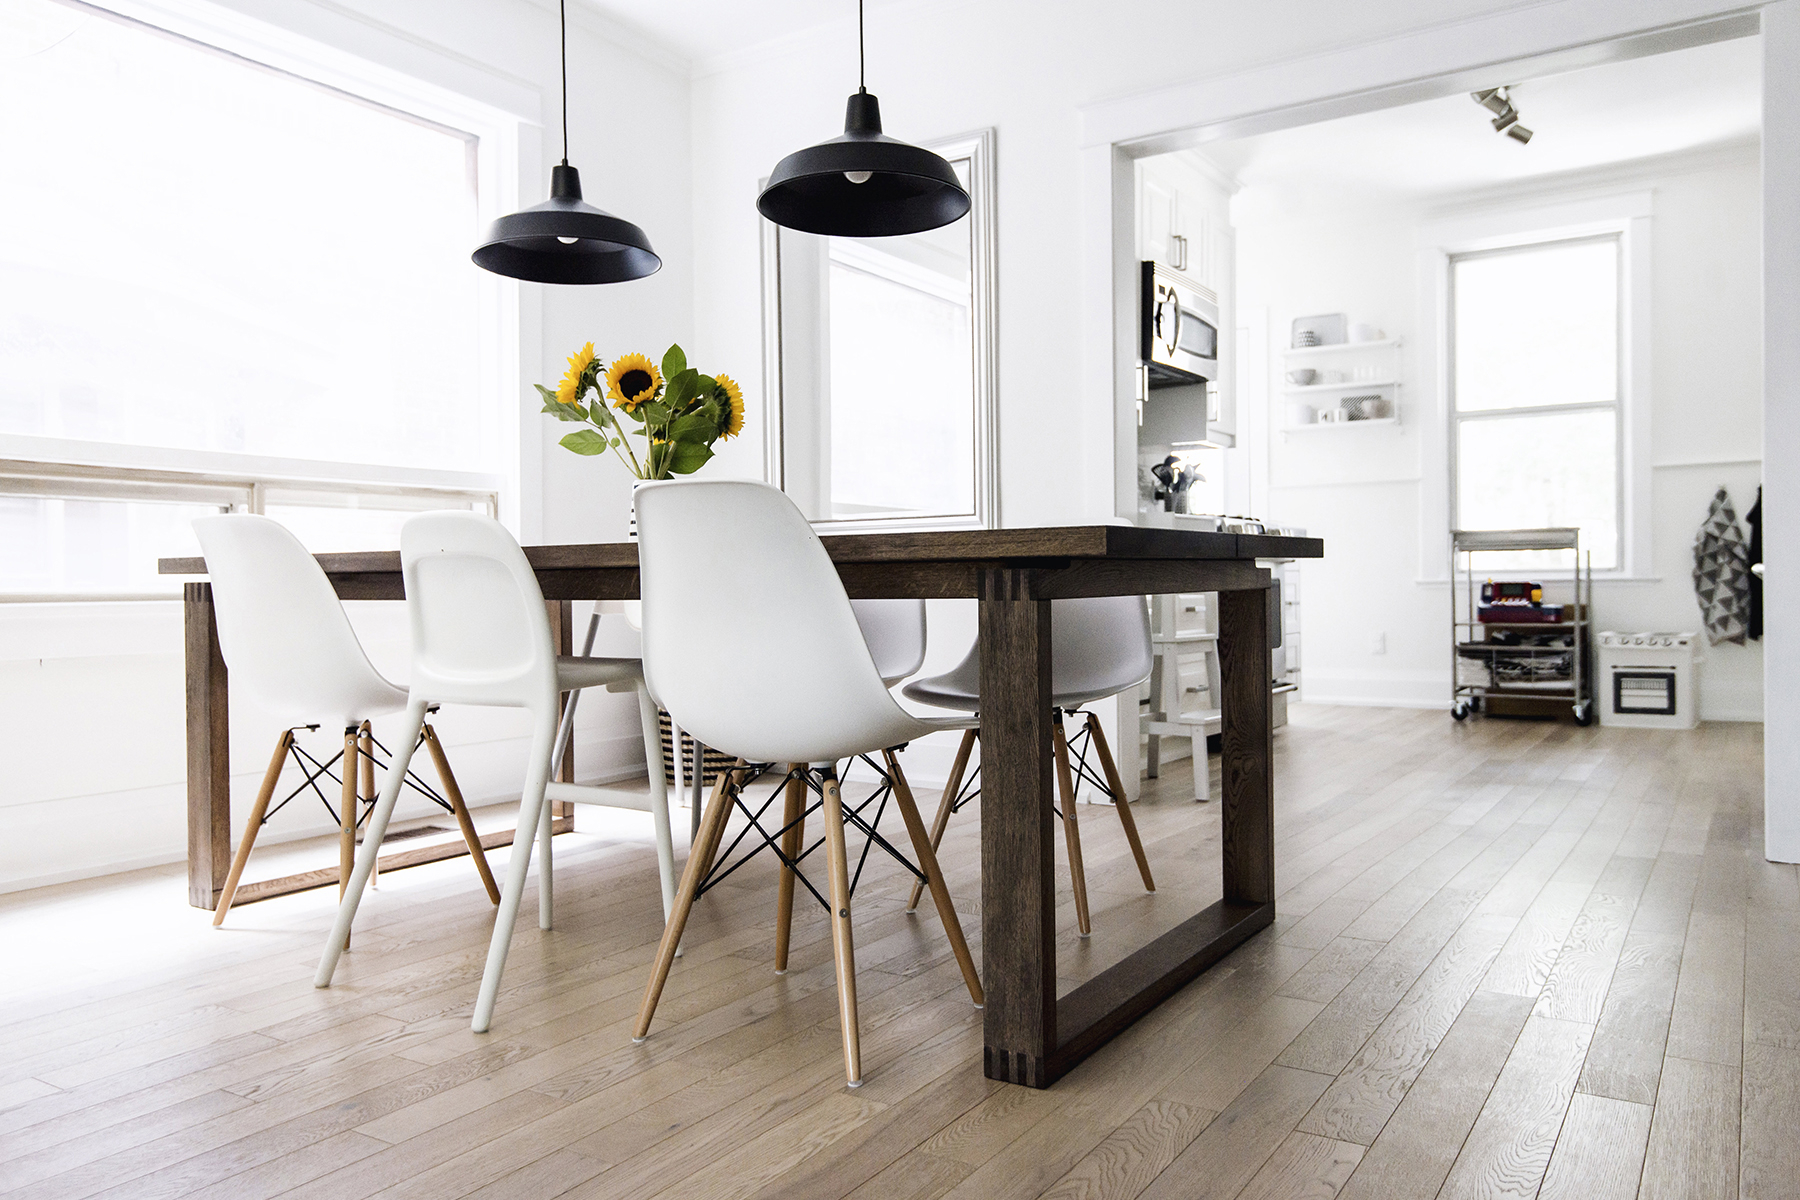 Widely Used Eames Style Dining Tables With Wooden Legs With Regard To House Tour: Dining Room (View 15 of 16)